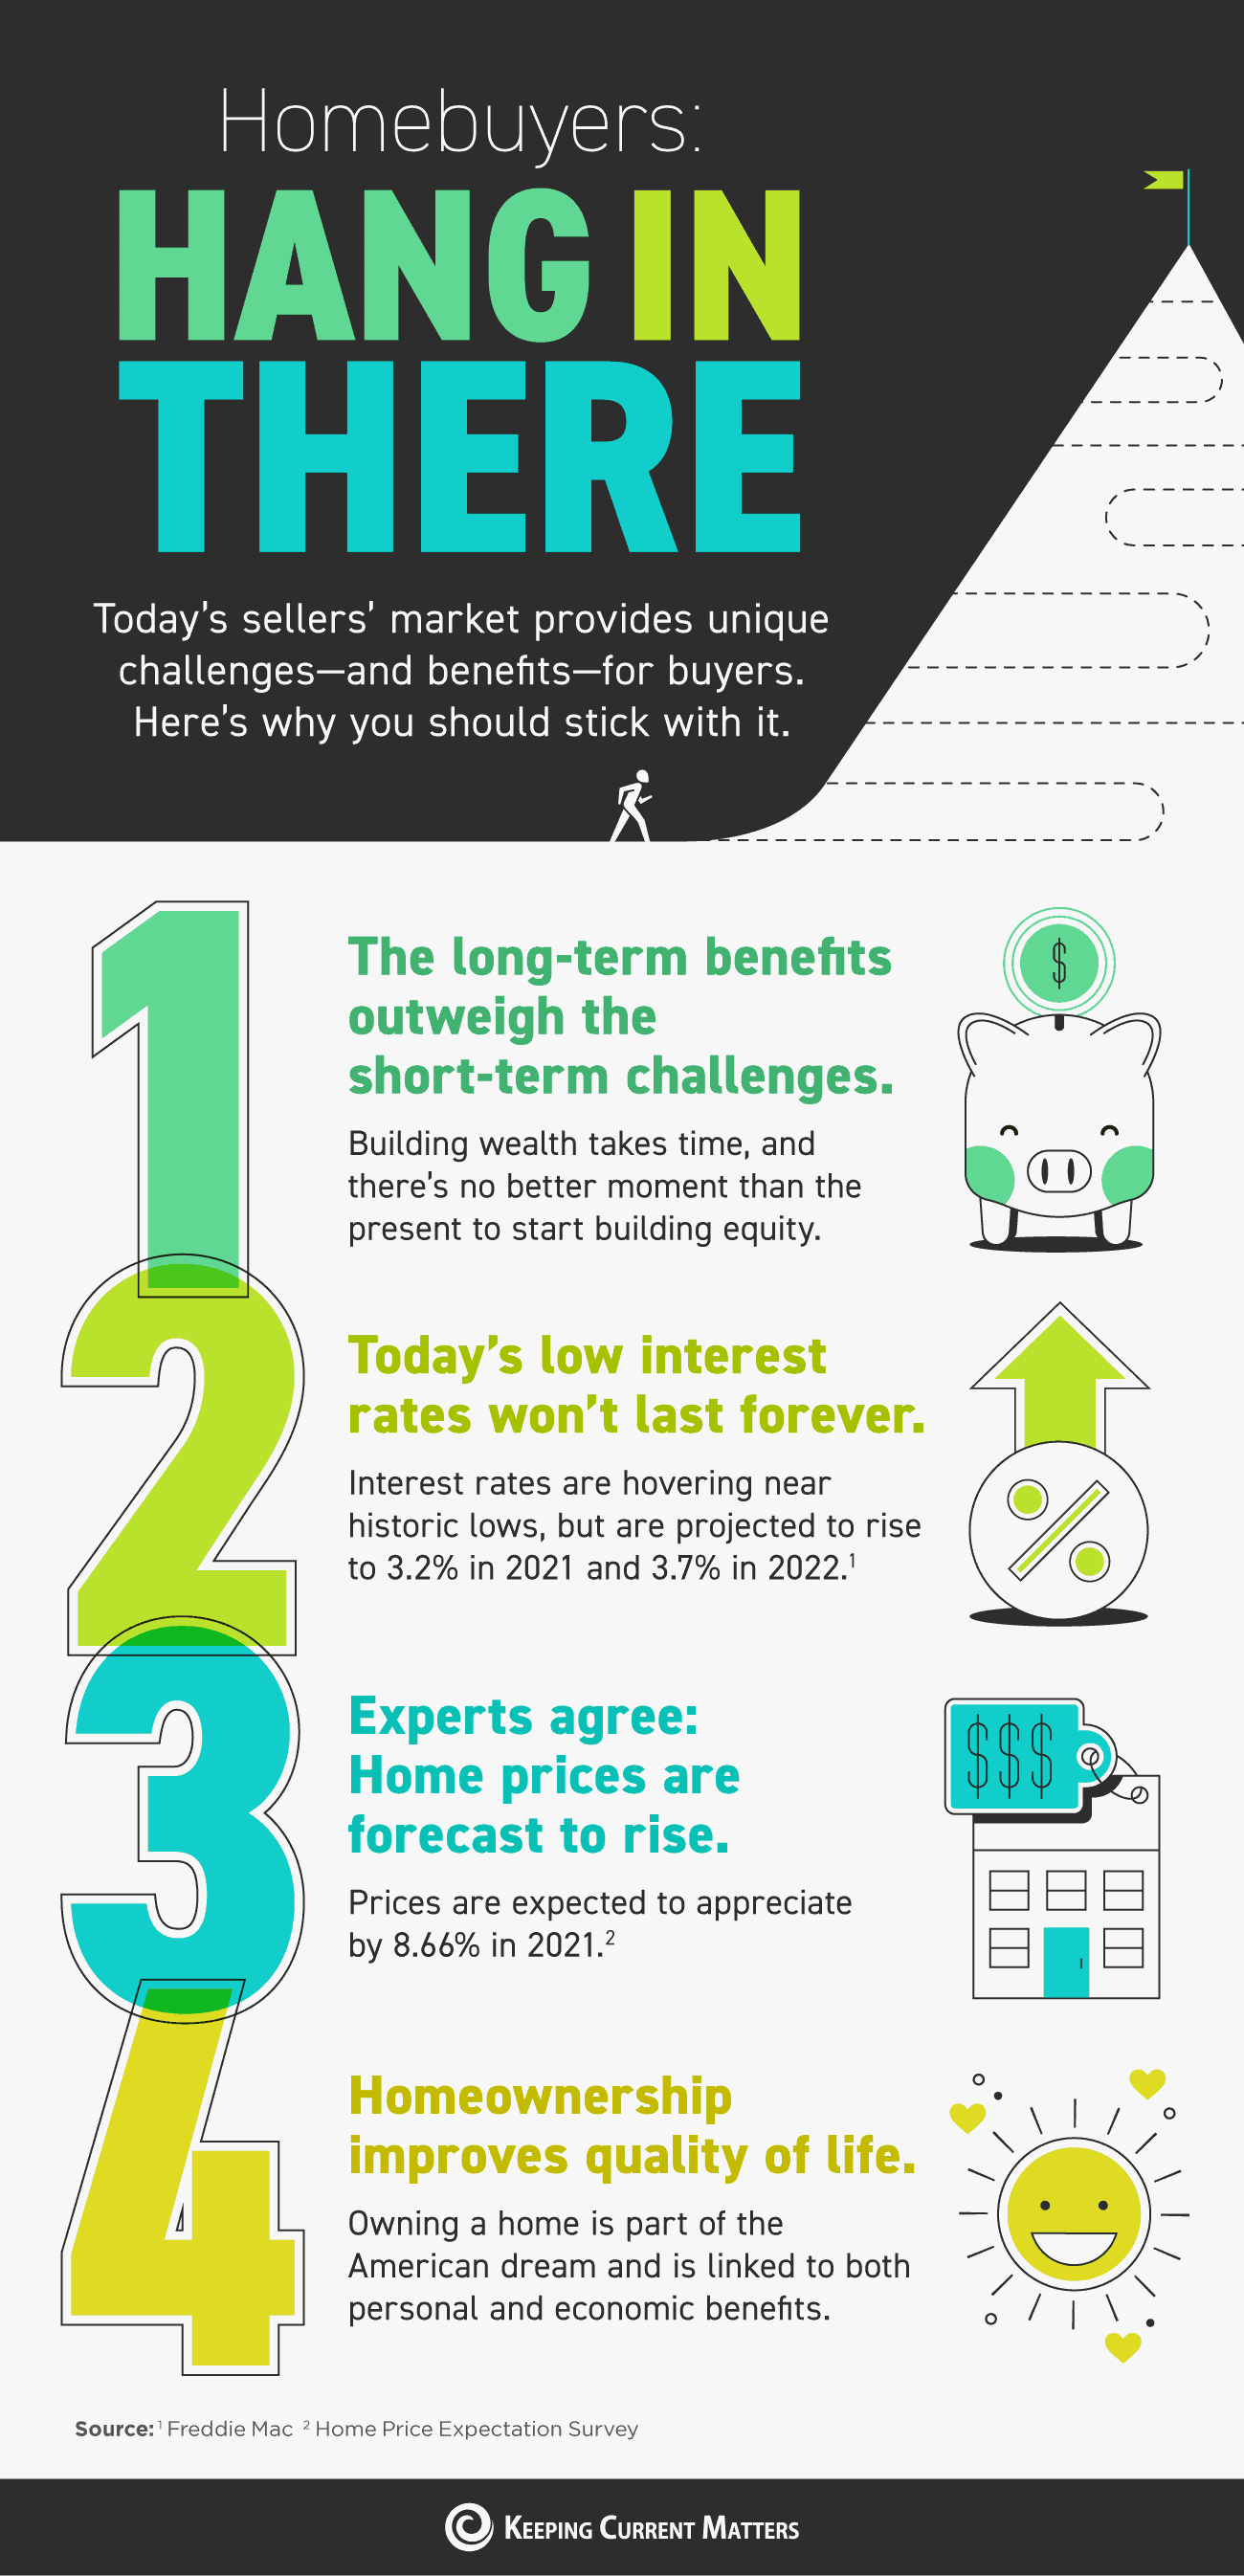 Homebuyers: Hang in There [INFOGRAPHIC] | Keeping Current Matters